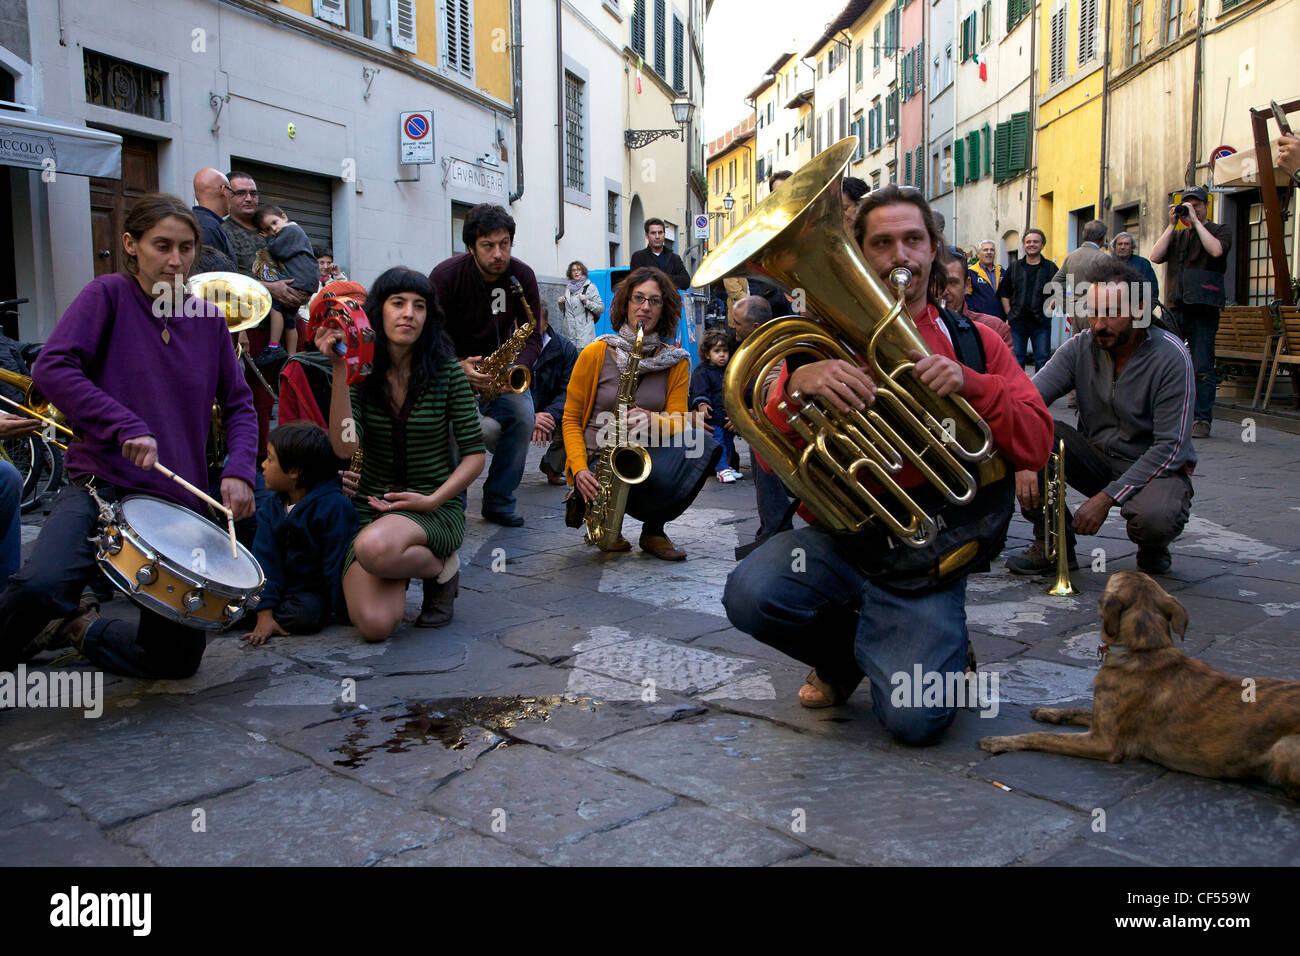 Fiati Sprecati, popular street band, perform in streets of Florence, Tuscany, Italy, Europe - Stock Image